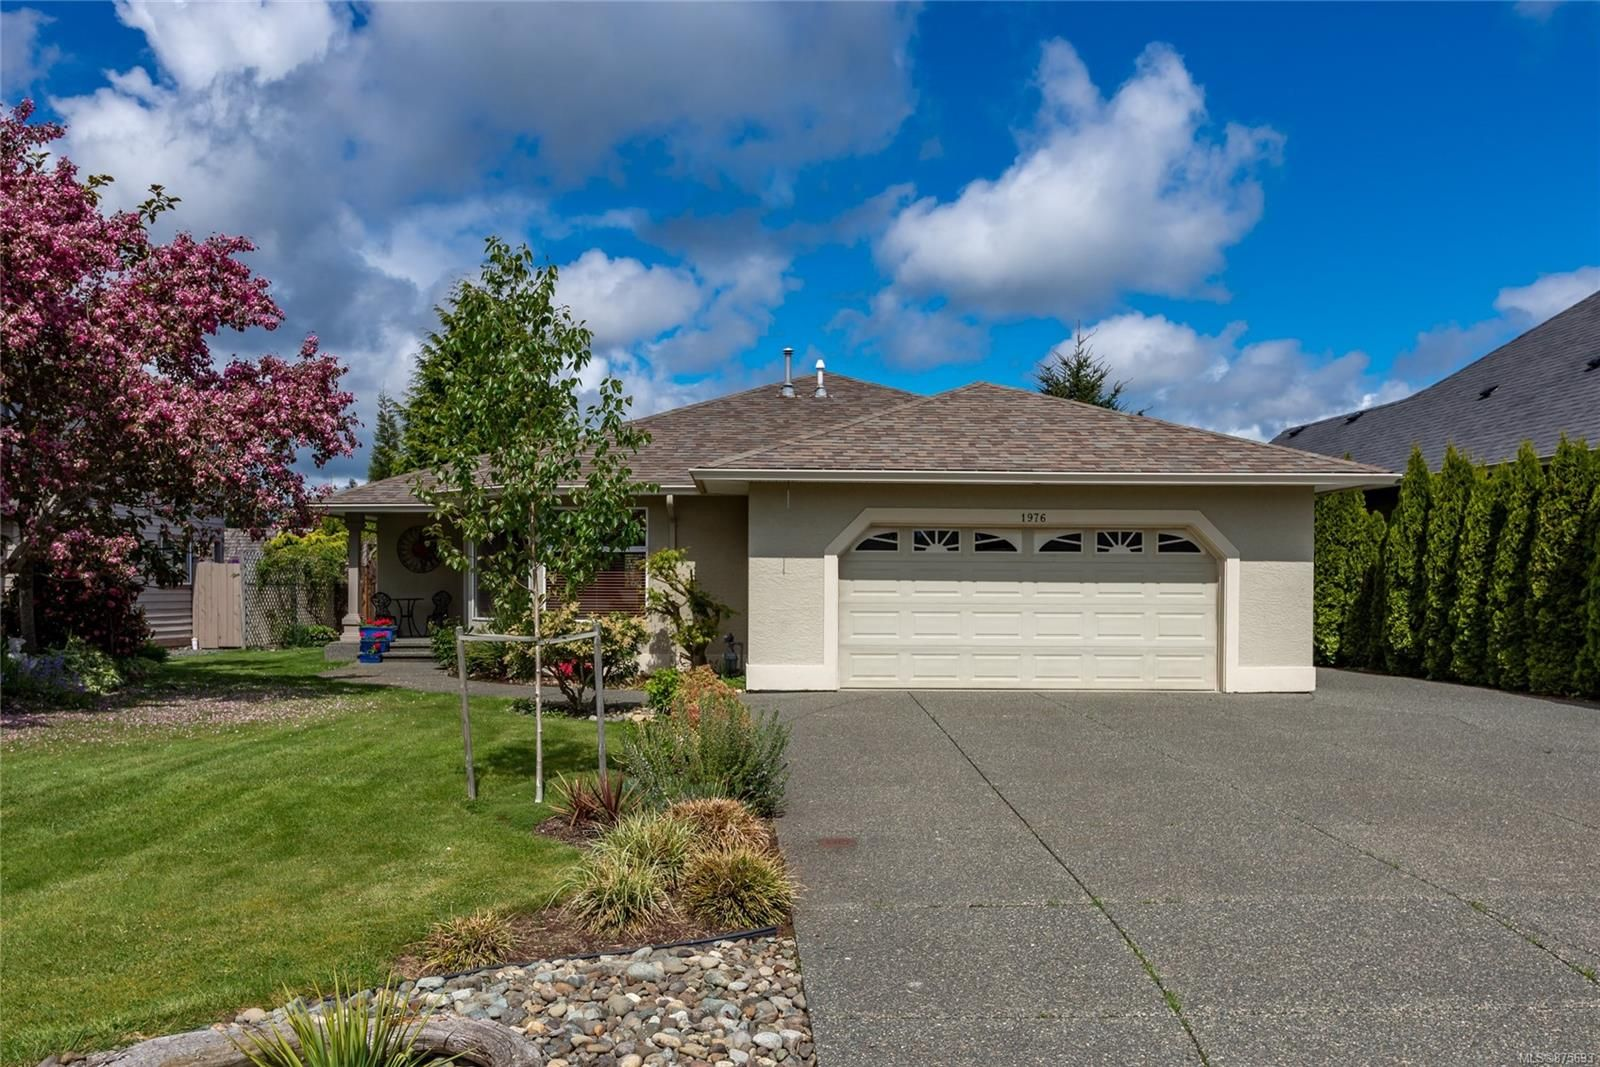 Main Photo: 1976 Fairway Dr in : CR Campbell River Central House for sale (Campbell River)  : MLS®# 875693